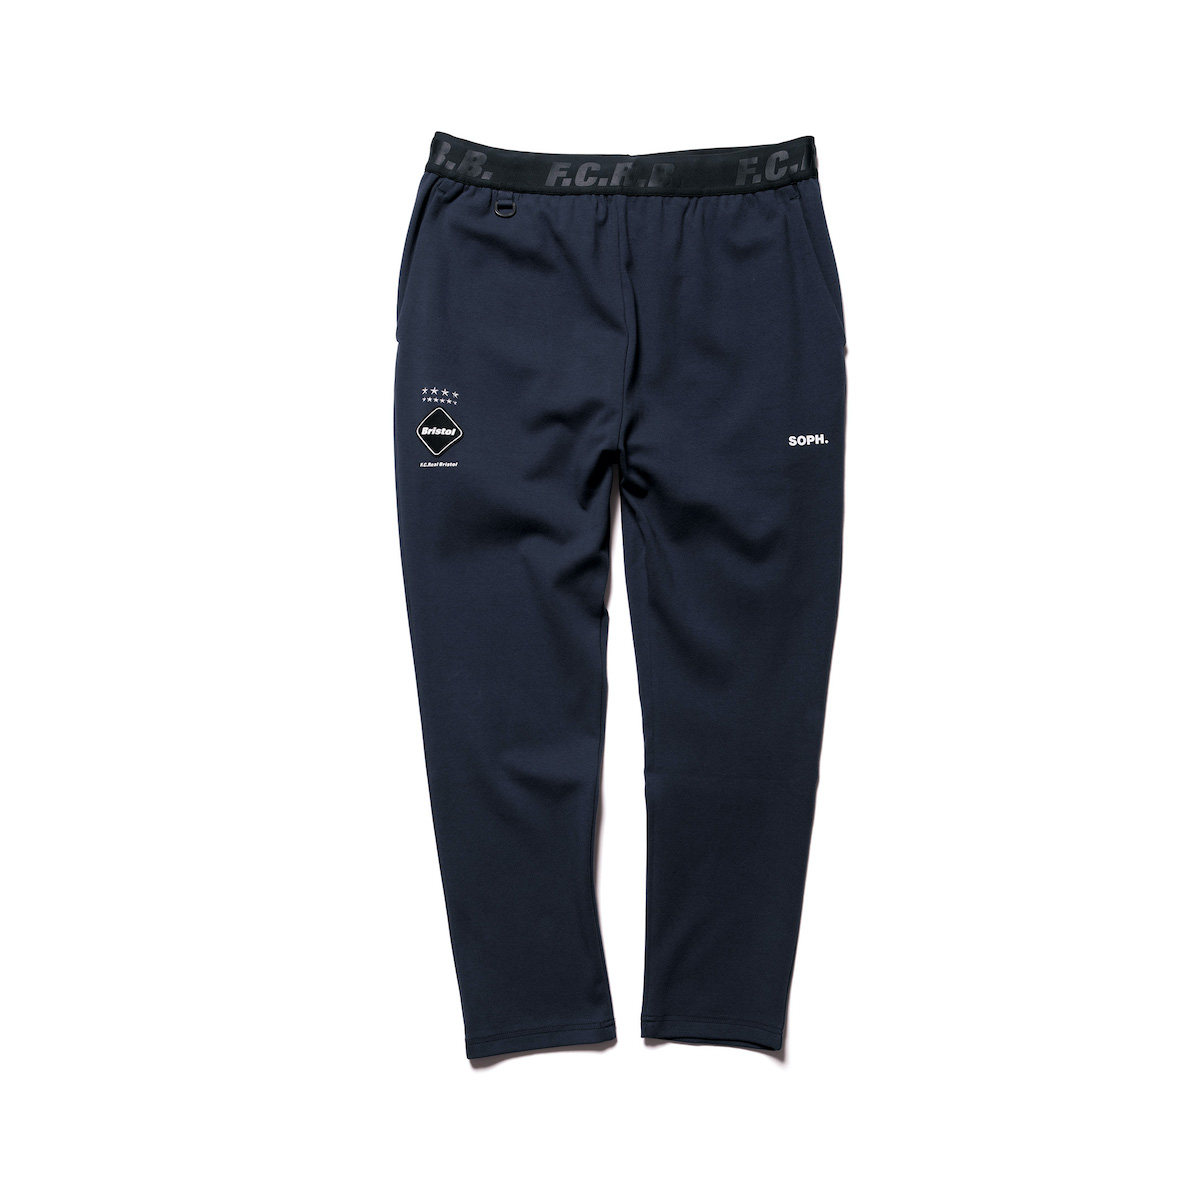 F.C.Real Bristol / RELAX FIT LONG PANTS (Navy)